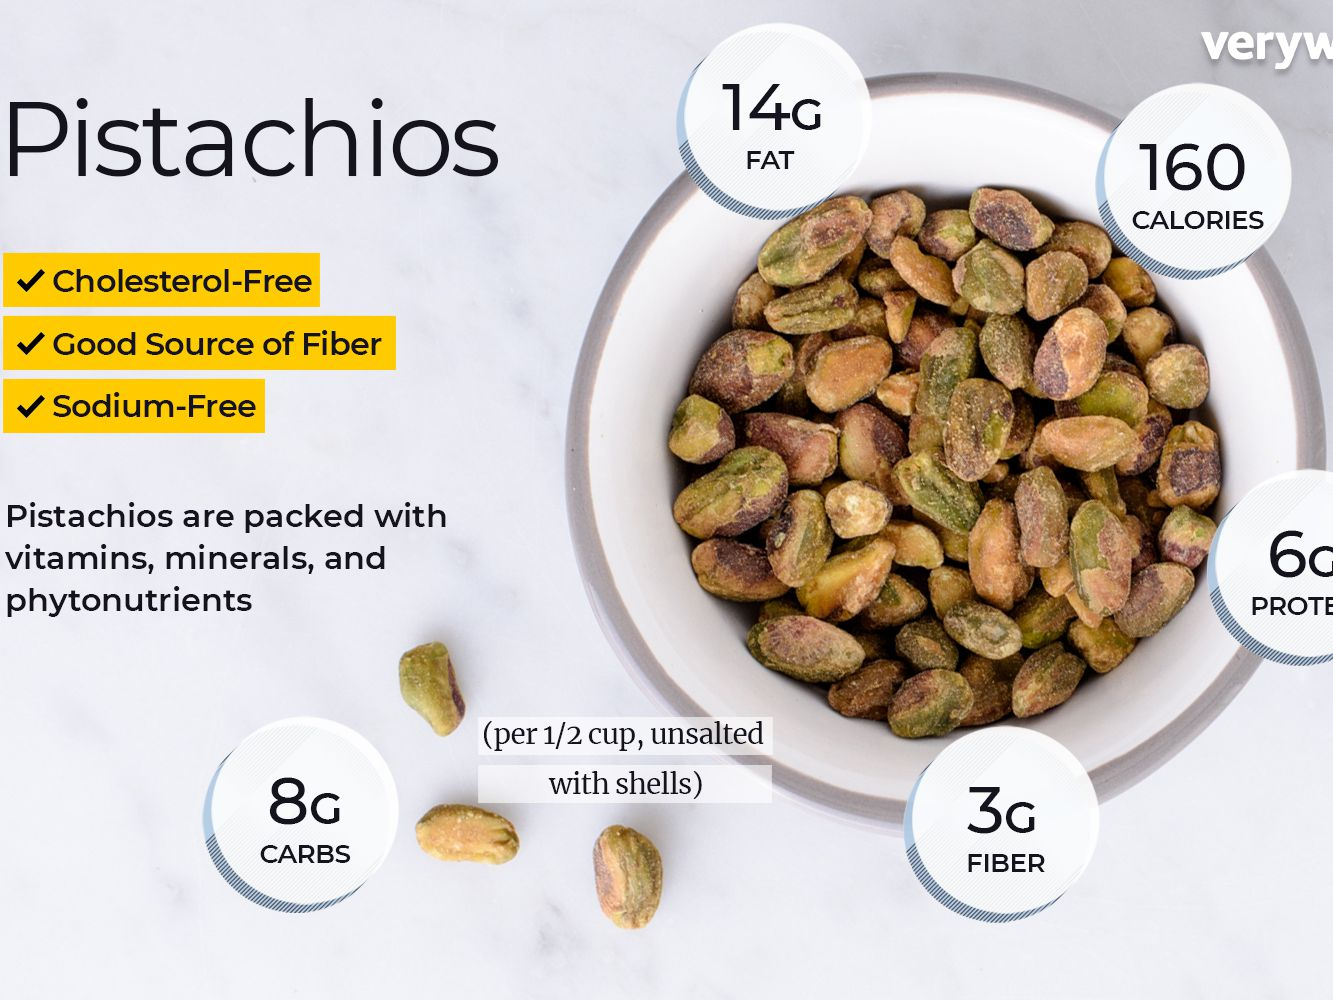 Pistachio Nutrition Facts And Health Benefits